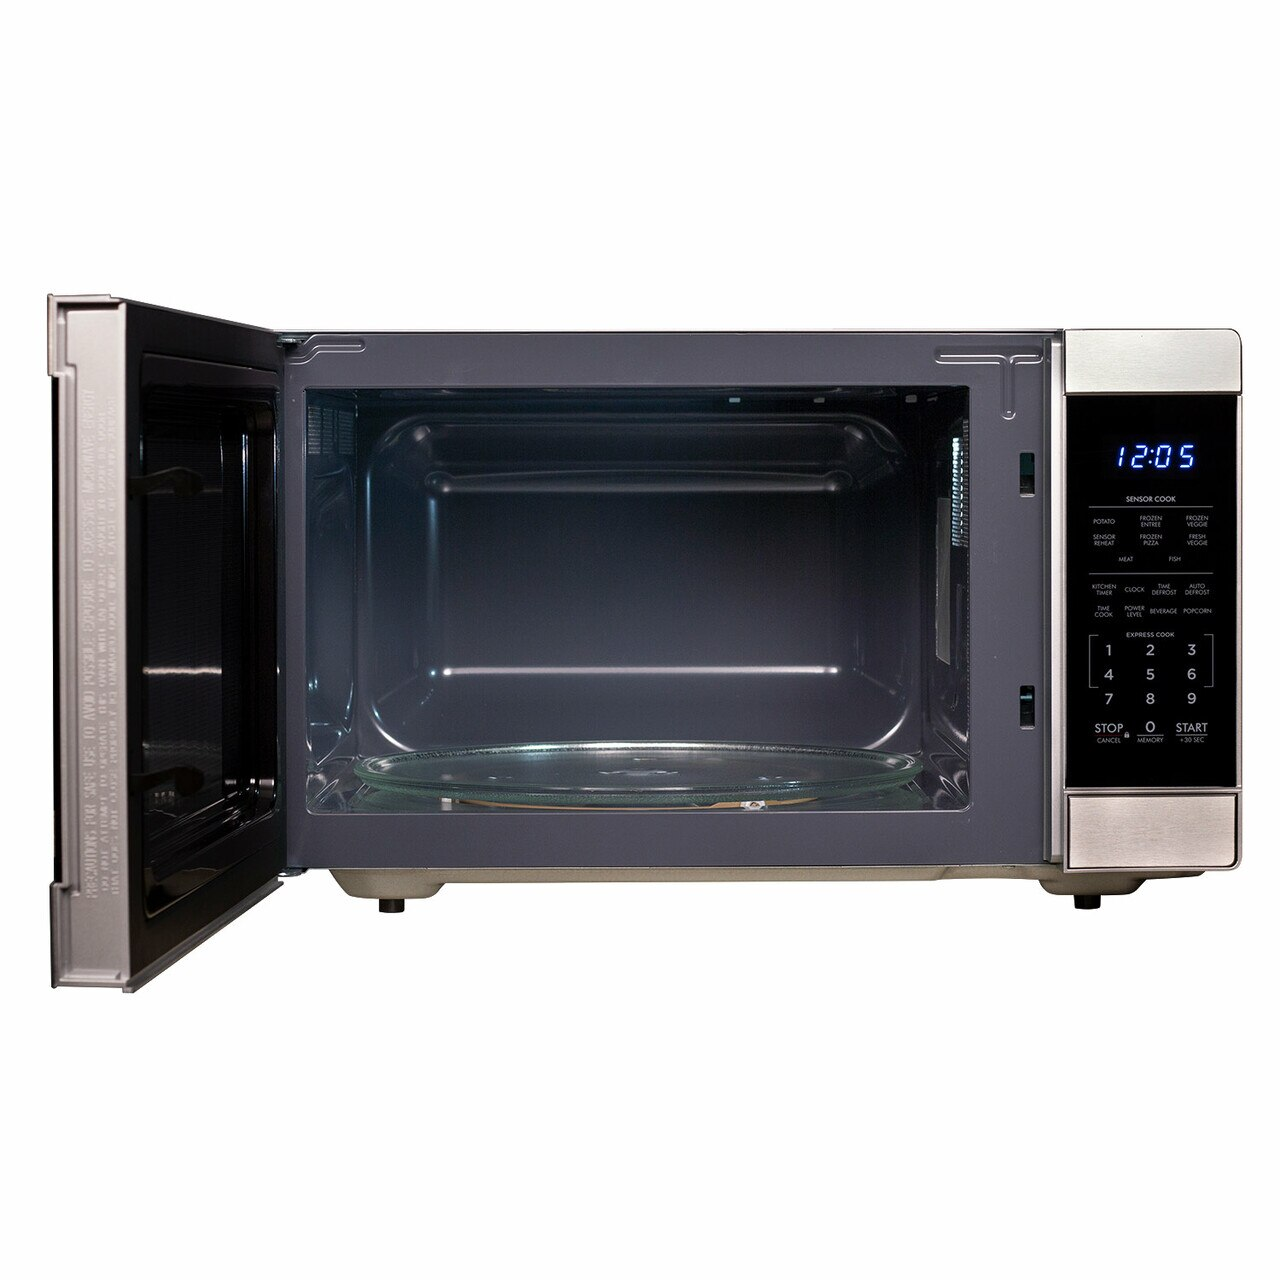 1.6 cu. ft. Stainless Steel Countertop Microwave (SMC1662DS) – front view with door open